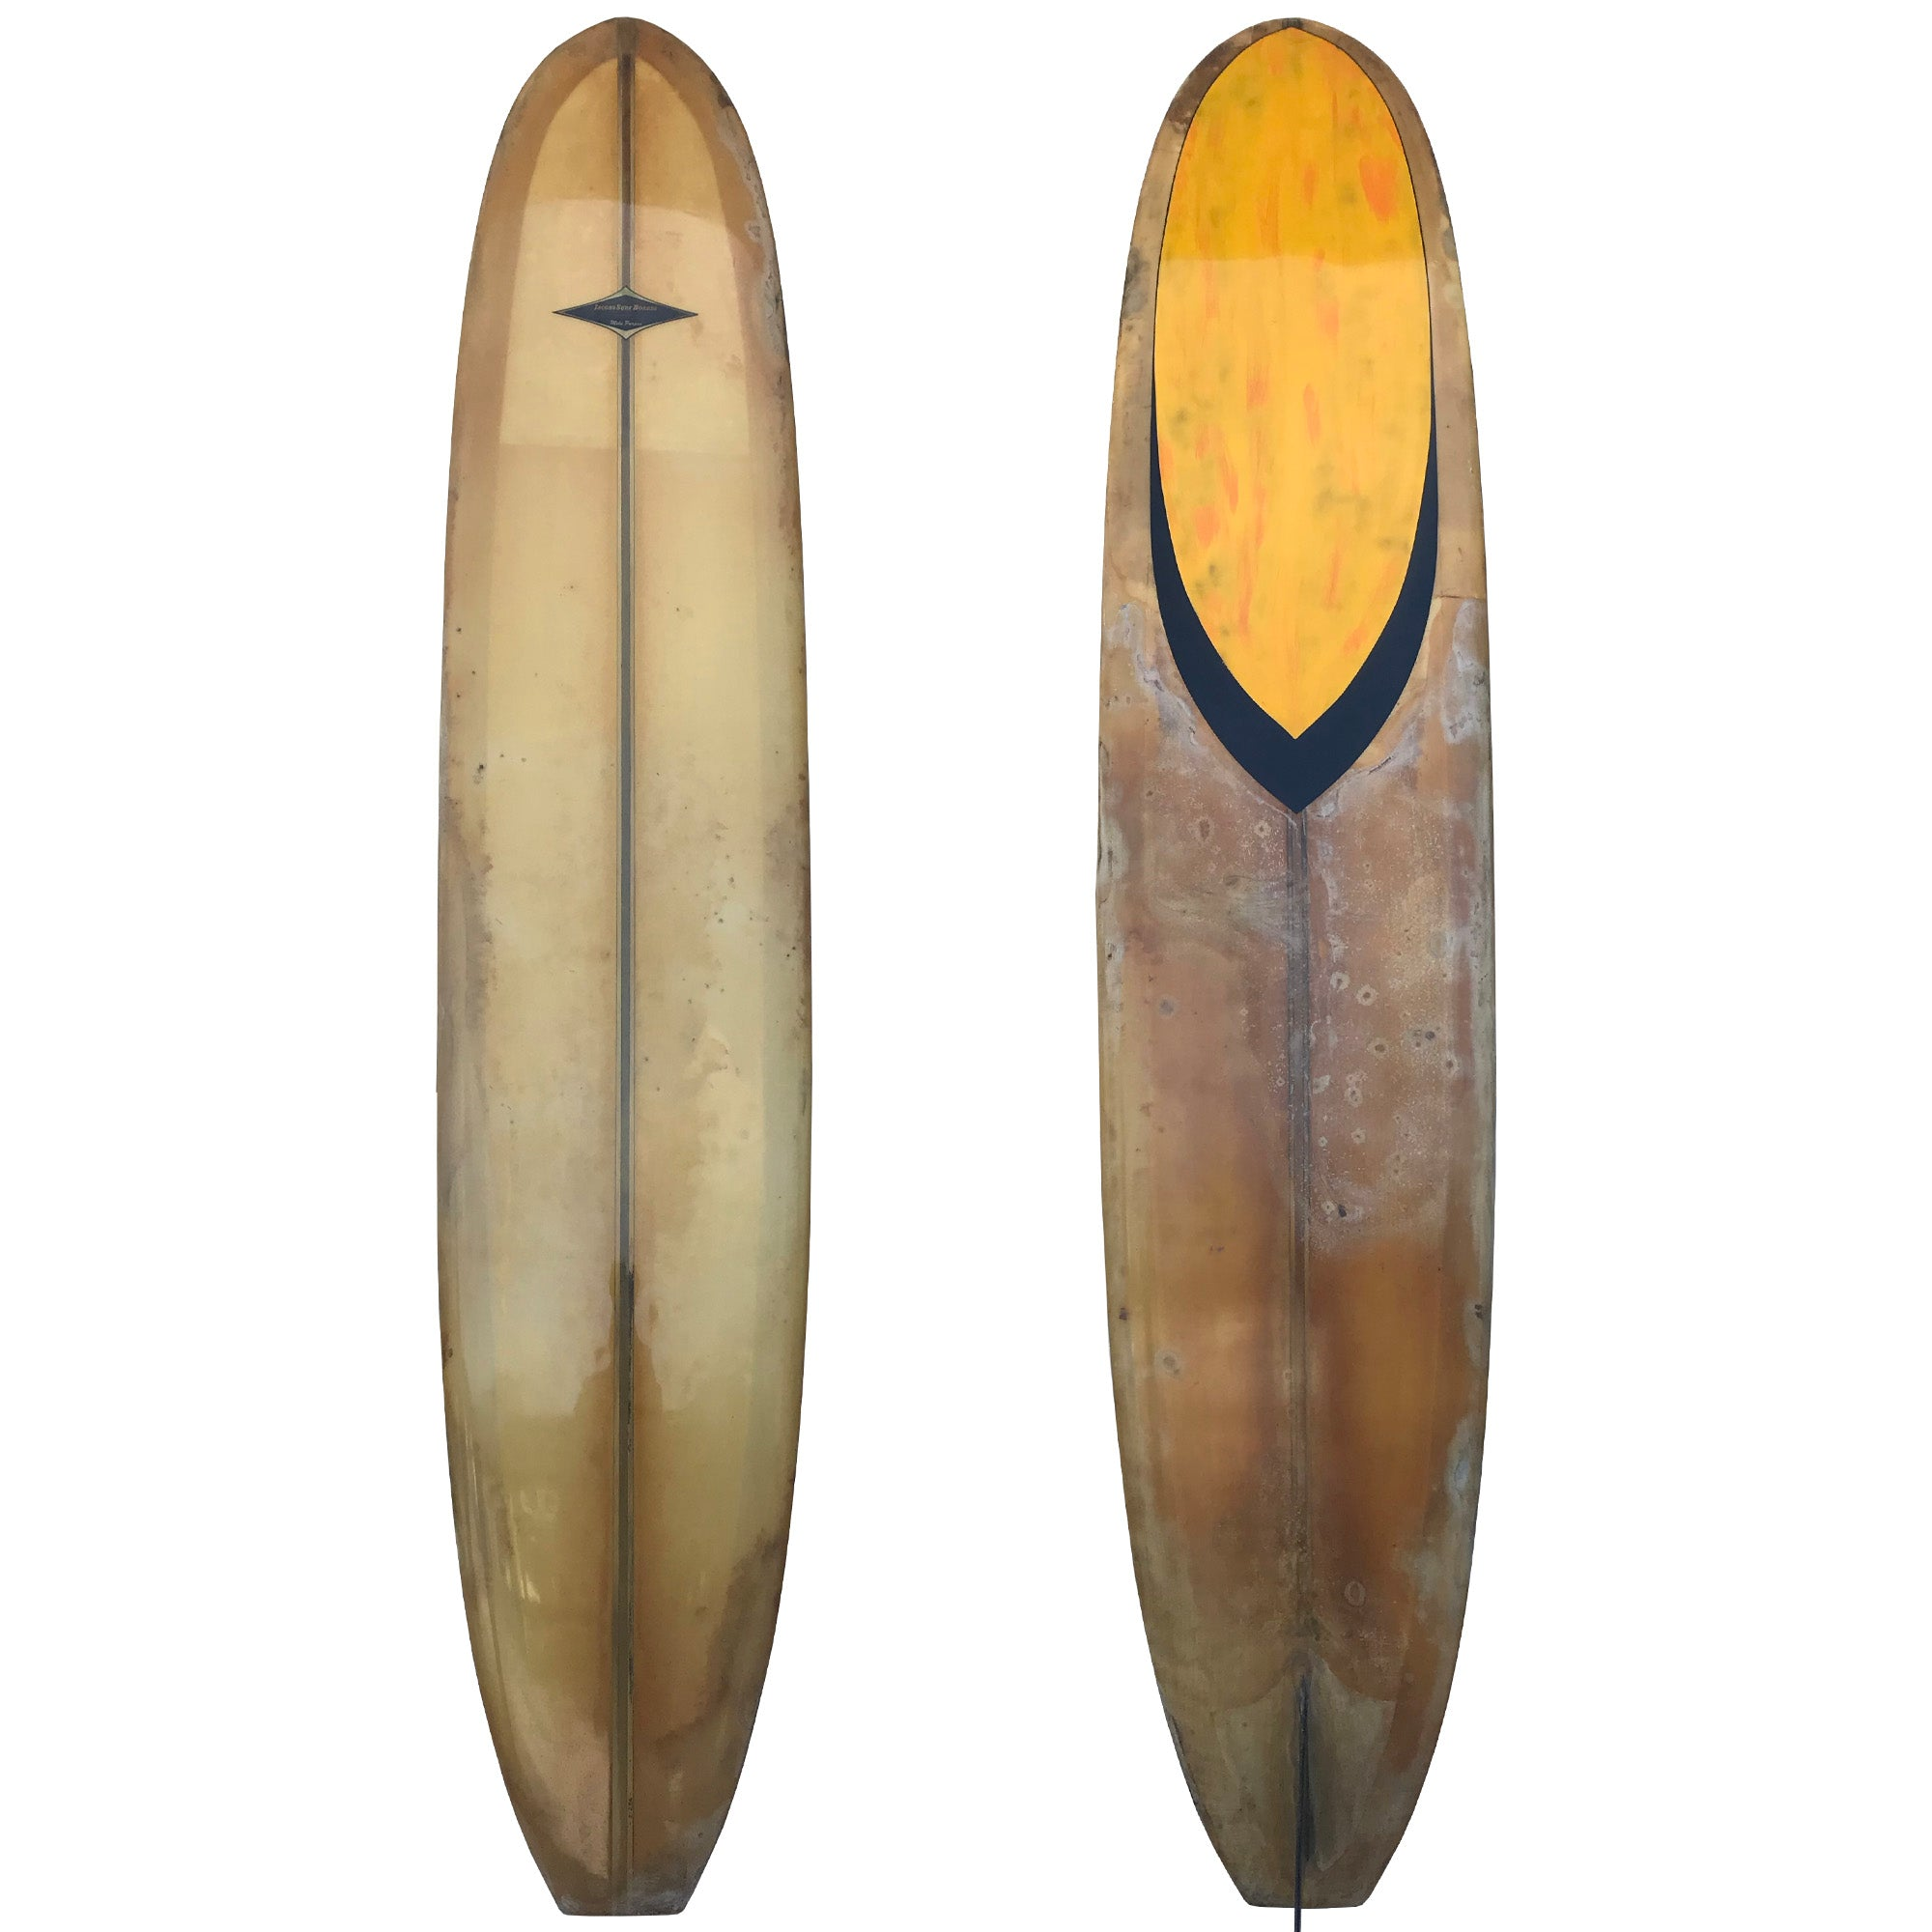 Jacobs Surfboards Designed by Mike Purpus Collector's Surfboard